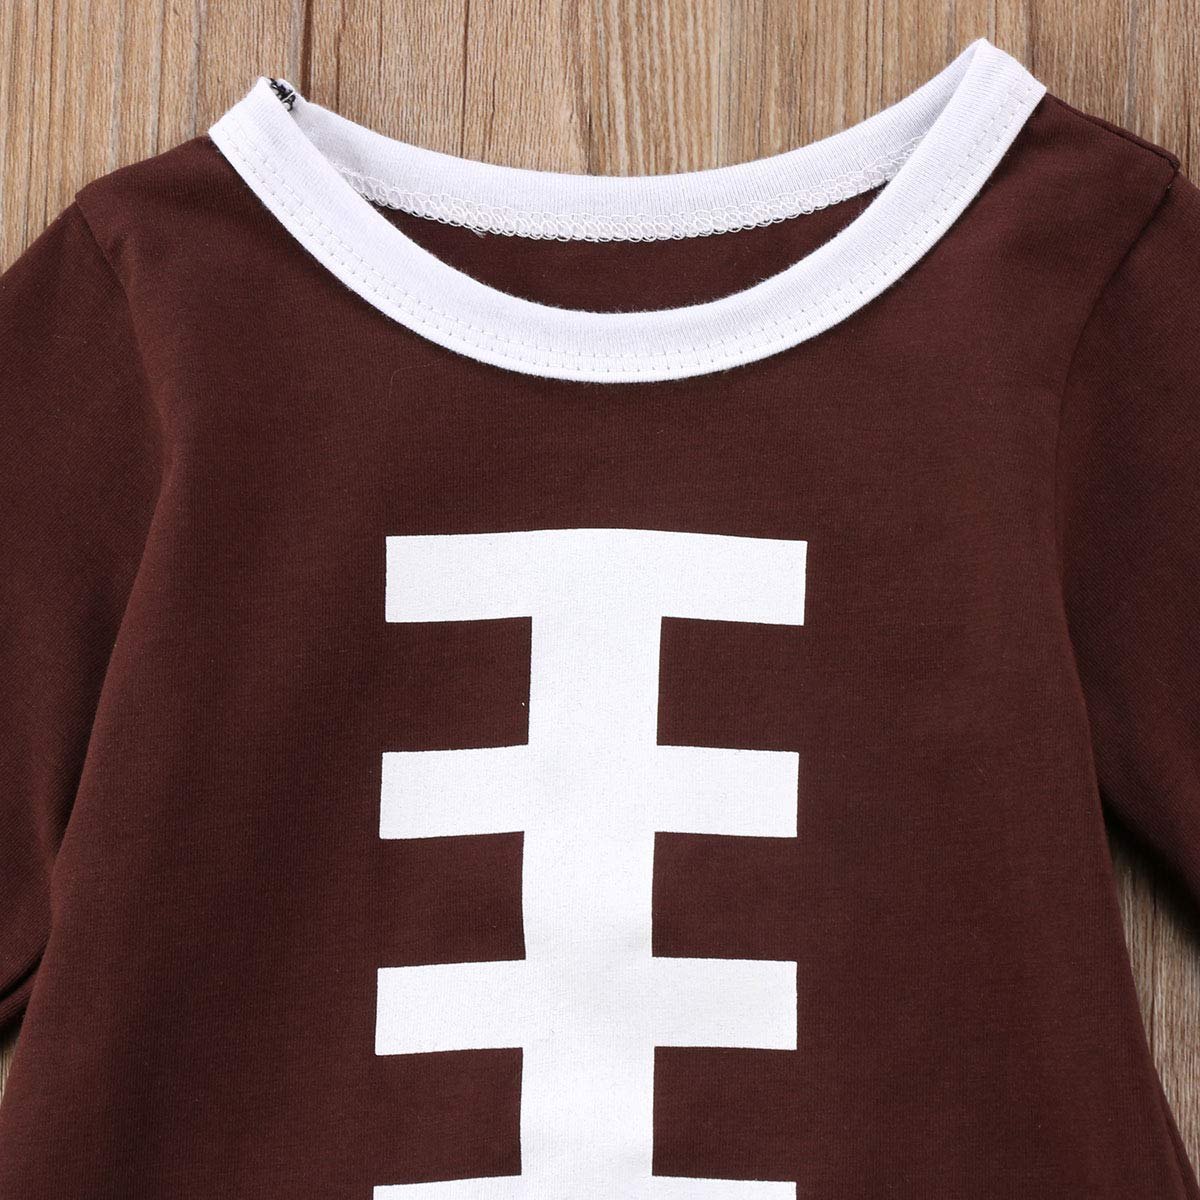 Turuste Toddler Baby Girls Tassels Dress Long Sleeve Rugby Print Outfits